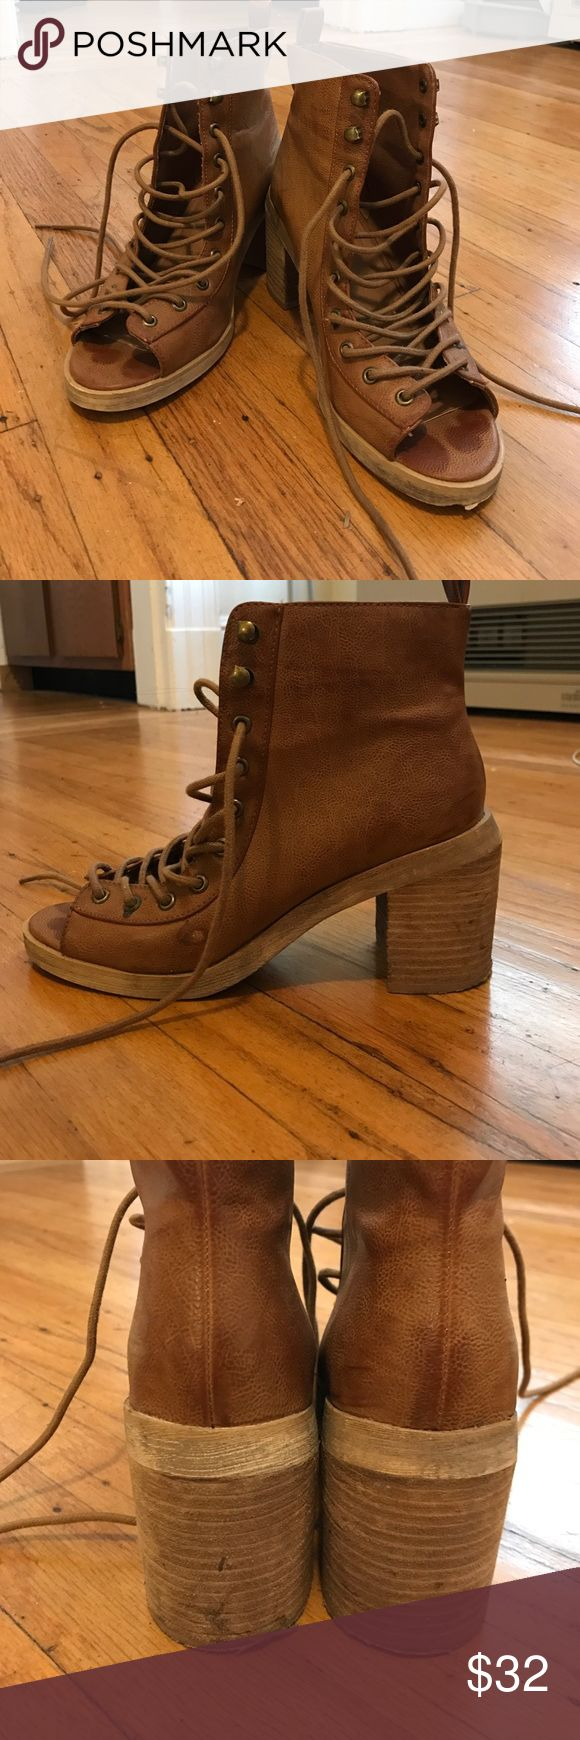 Urban Outfitters (deena and ozzy) lace up heels Worn 2-3 times. Urban Outfitters Shoes Lace Up Boots